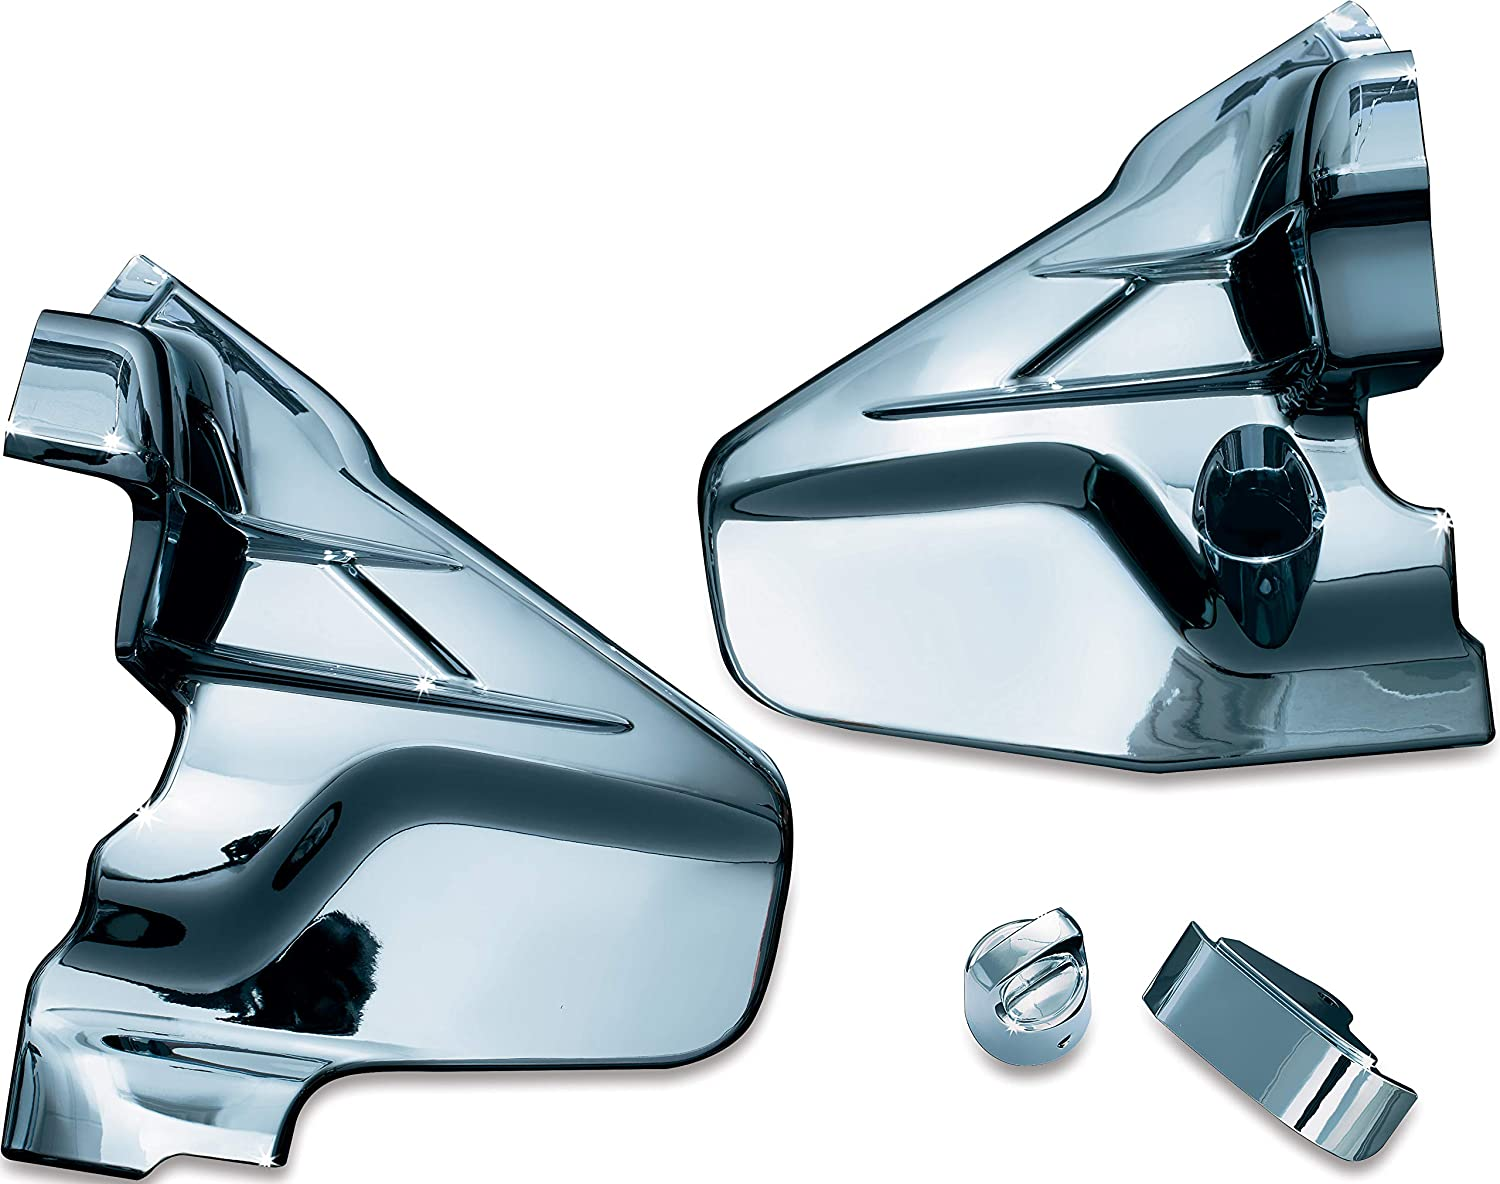 Kuryakyn 7366 Motorcycle Accent Accessory: Louvered Transmission Cover for 2001-17 Honda Gold Wing GL1800 & F6B Motorcycles, Chrome, 1 Pair